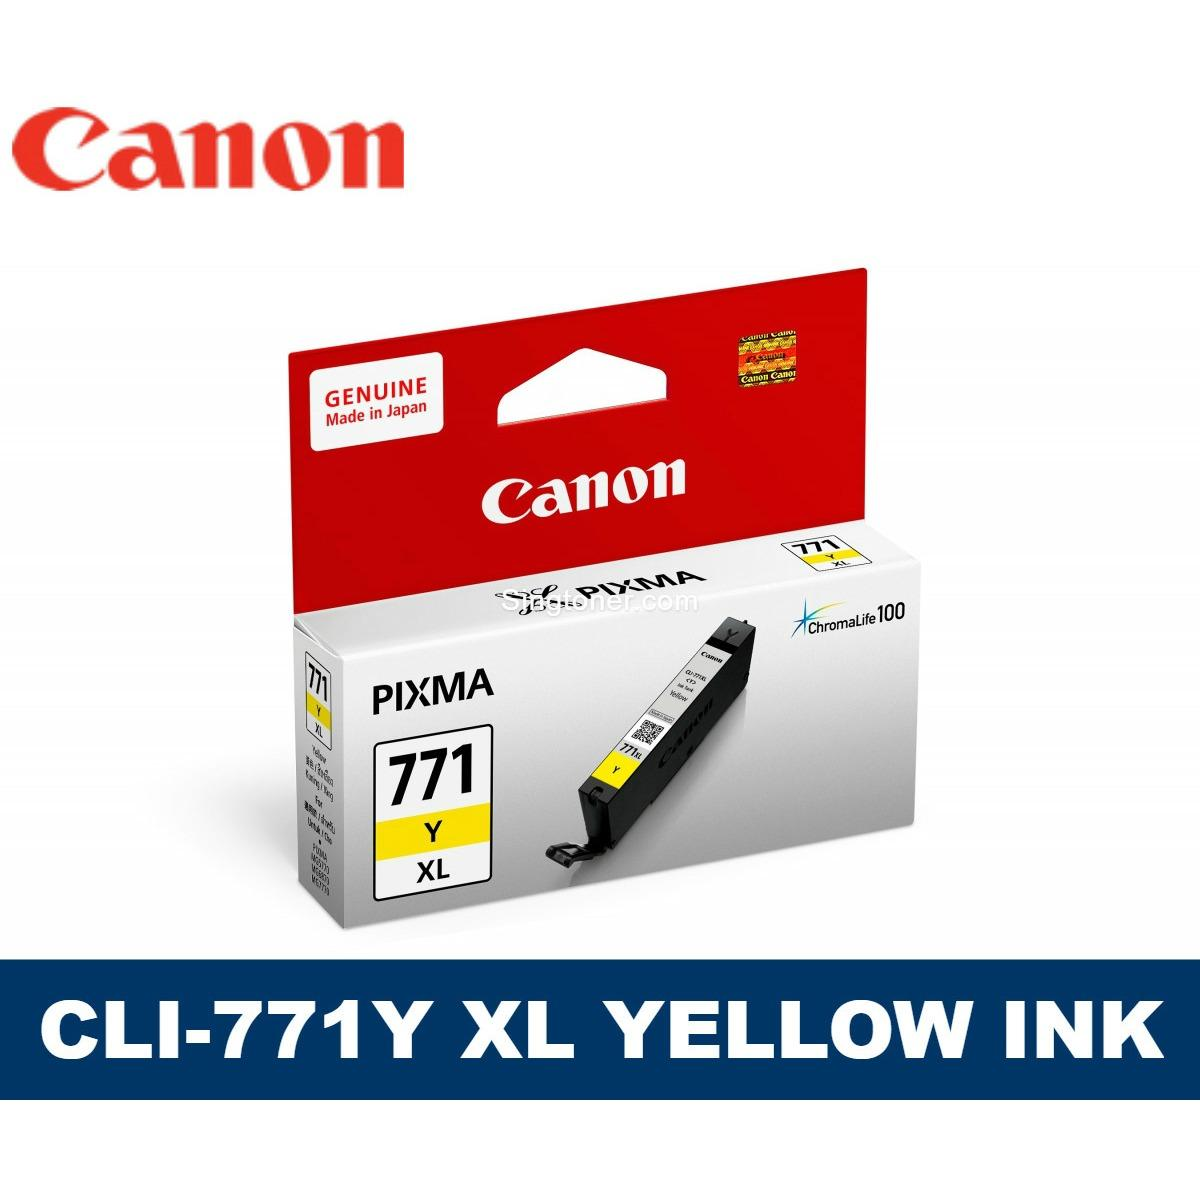 Buy Original Canon Cli 771 Xl Y Yellow Ink For Pixma Mg7770 Pixma Mg6870 Pixma Mg5770 Cli 771 Xly Cli 771Xl Y Cli 771Xly Cli 771Xly 771Xl Y 771 Xly 771 Xl Y Cli771Xly Cli771 Xly Cli771Xl Y Cli771 Xl Y Cli 771Y Cli771Y Cli 771Y Online